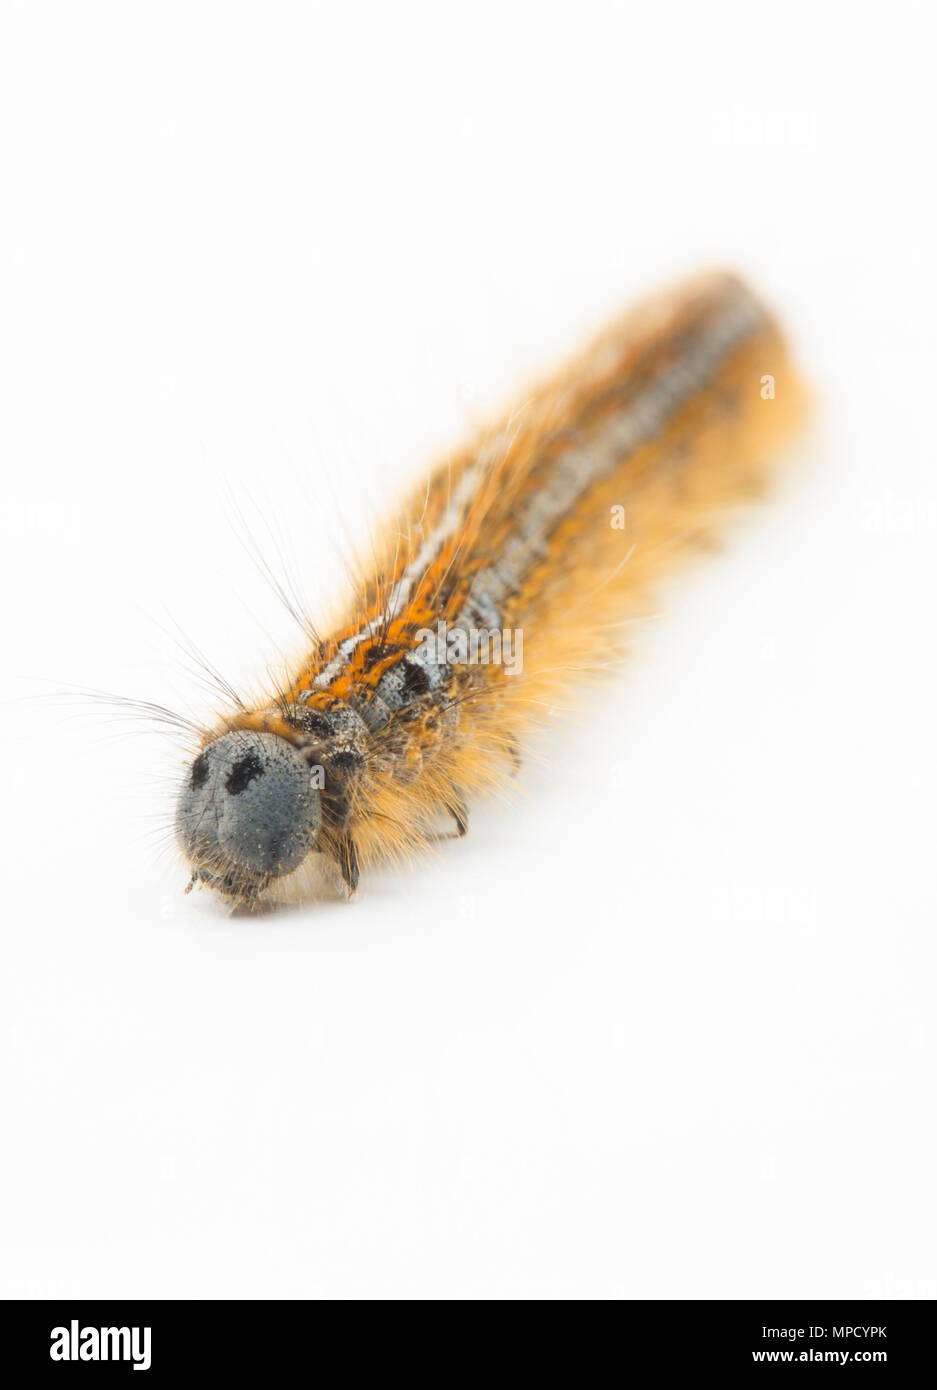 The caterpillar of the Lackey Moth, Malacosoma neustria, found in North Dorset England UK GB and photographed on a white background. - Stock Image